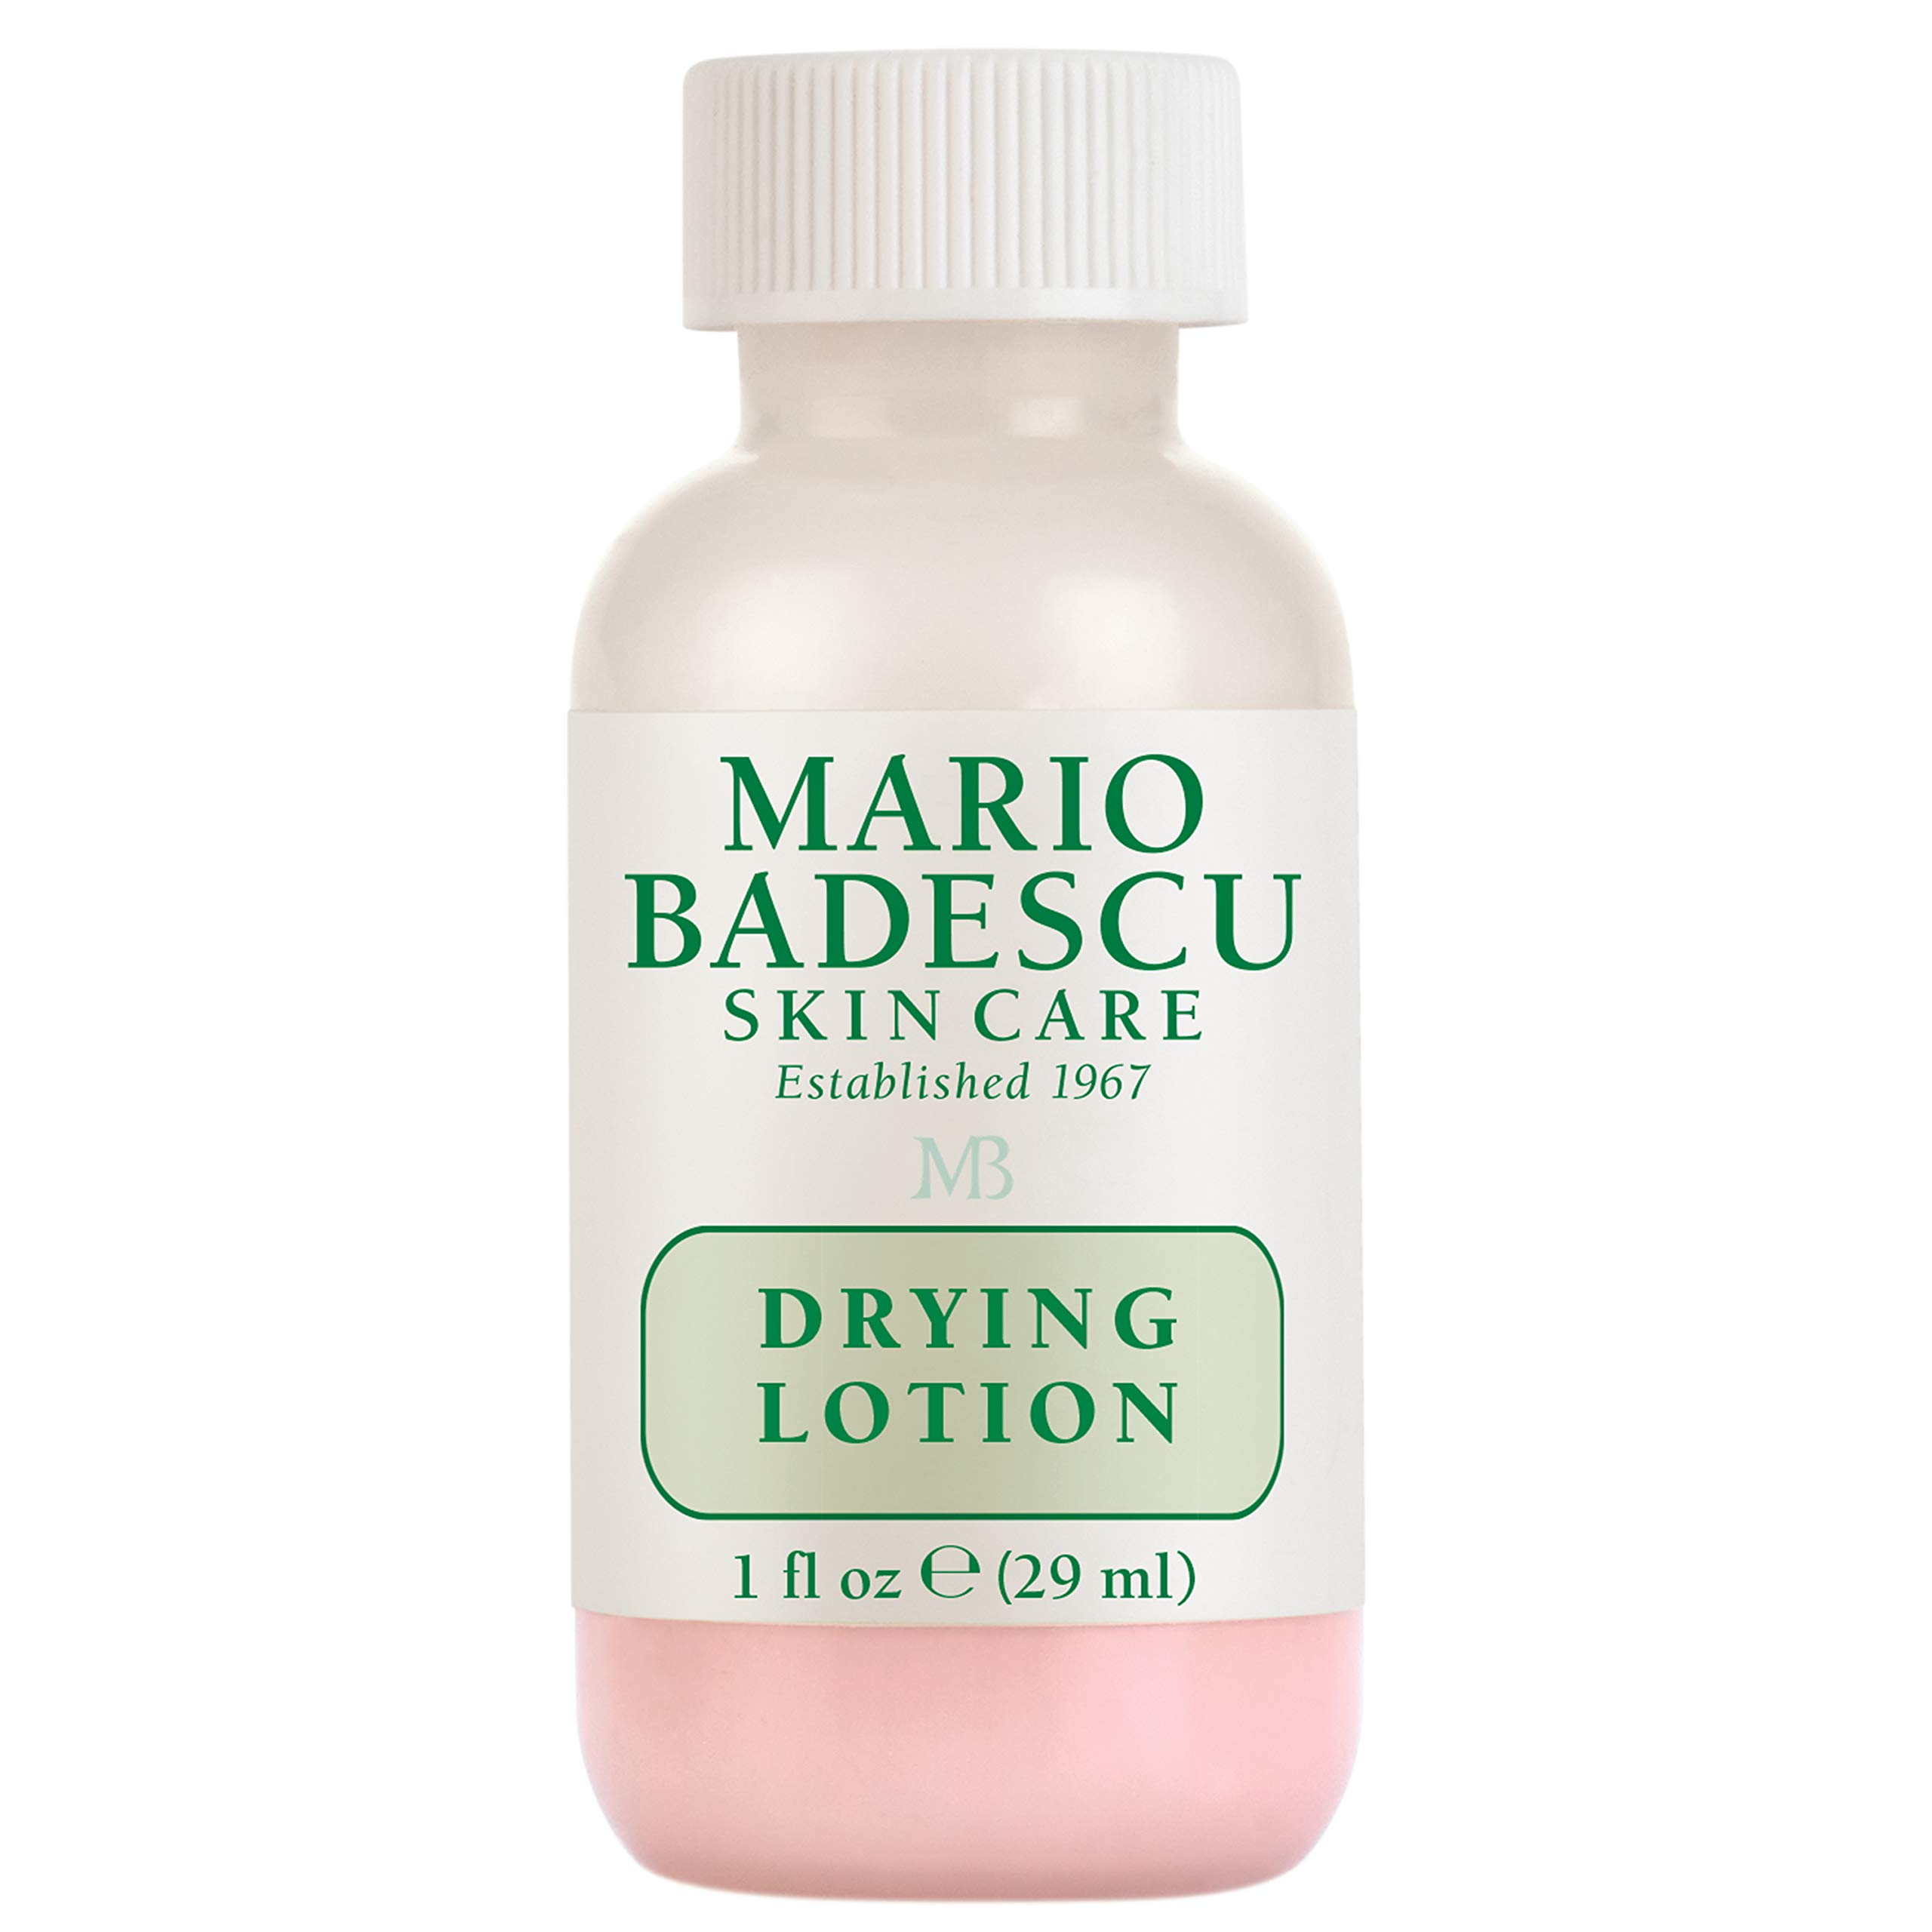 Mario Badescu Drying Lotion (Plastic bottle) 29ml